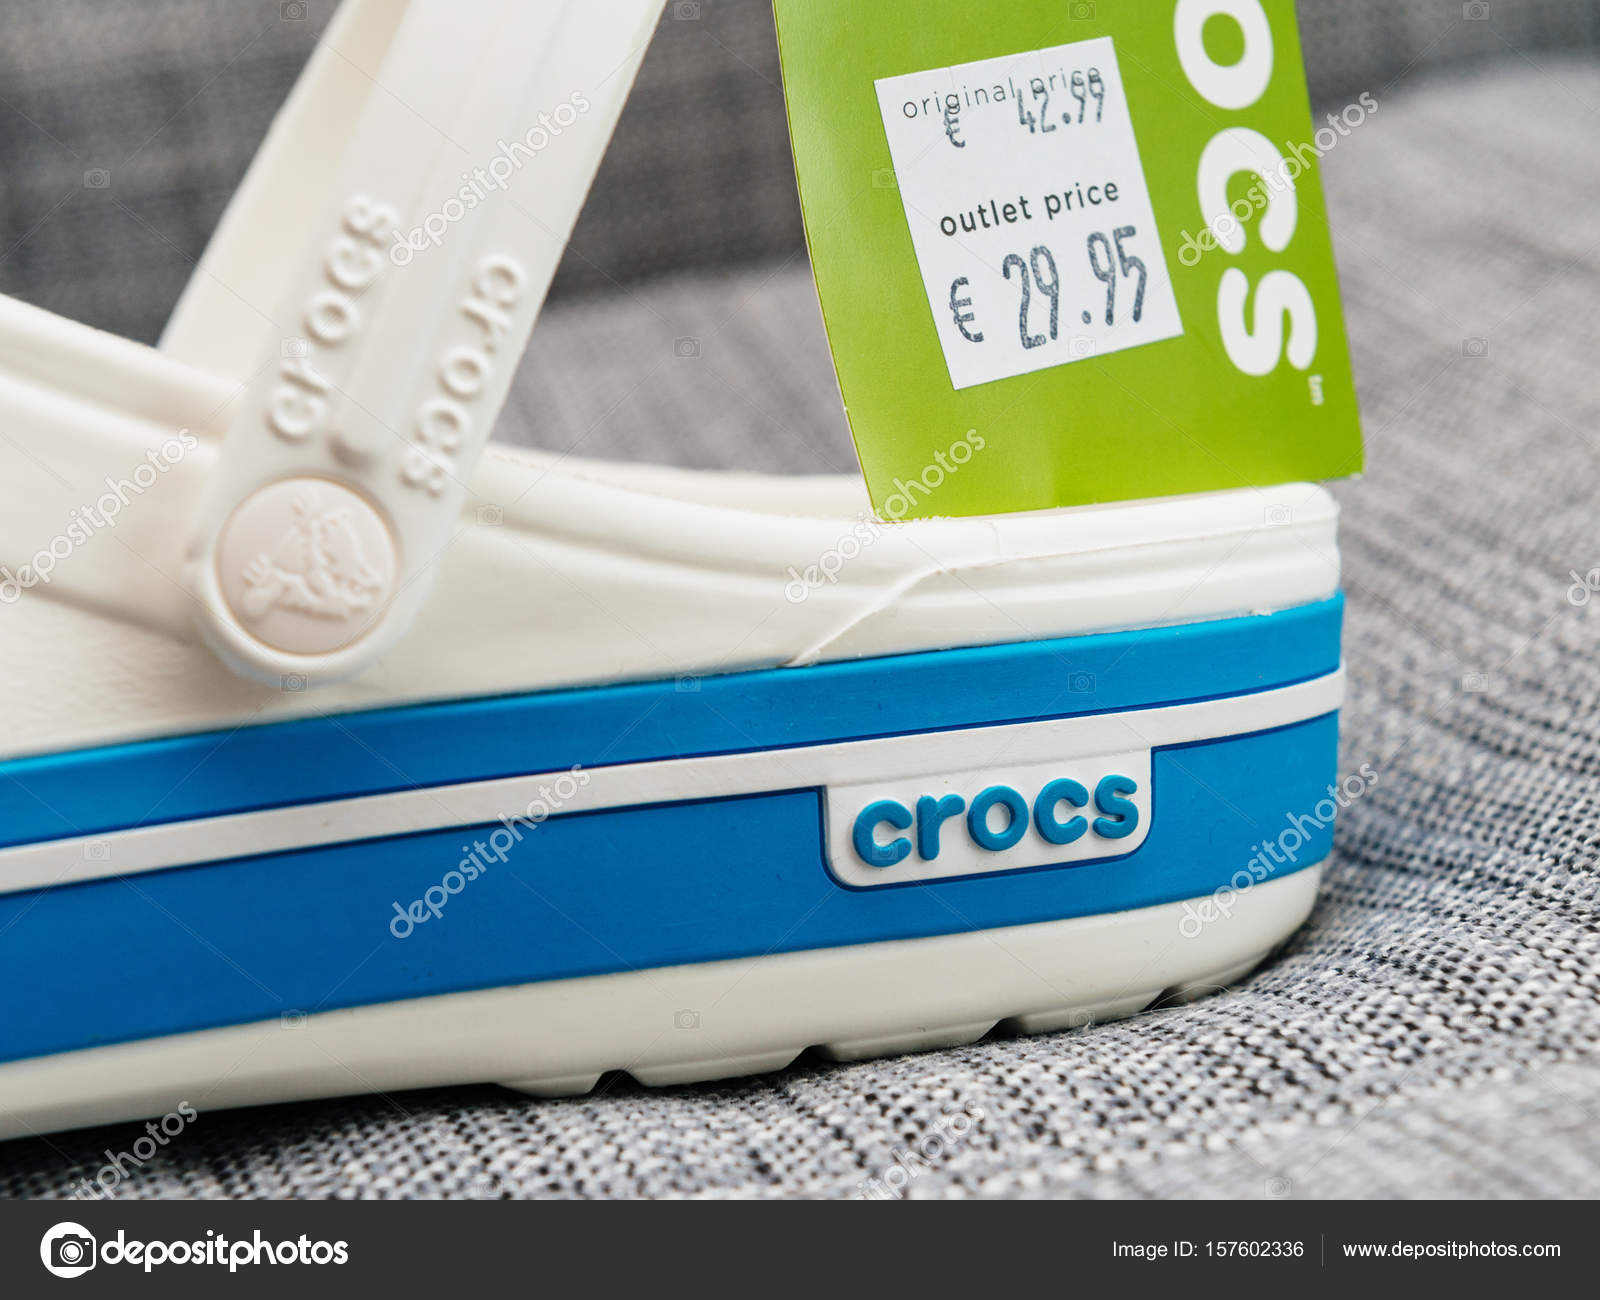 dfeef02956b7ce Crocs clogs shoes with regular and outlet price– Stock Editorial Photography